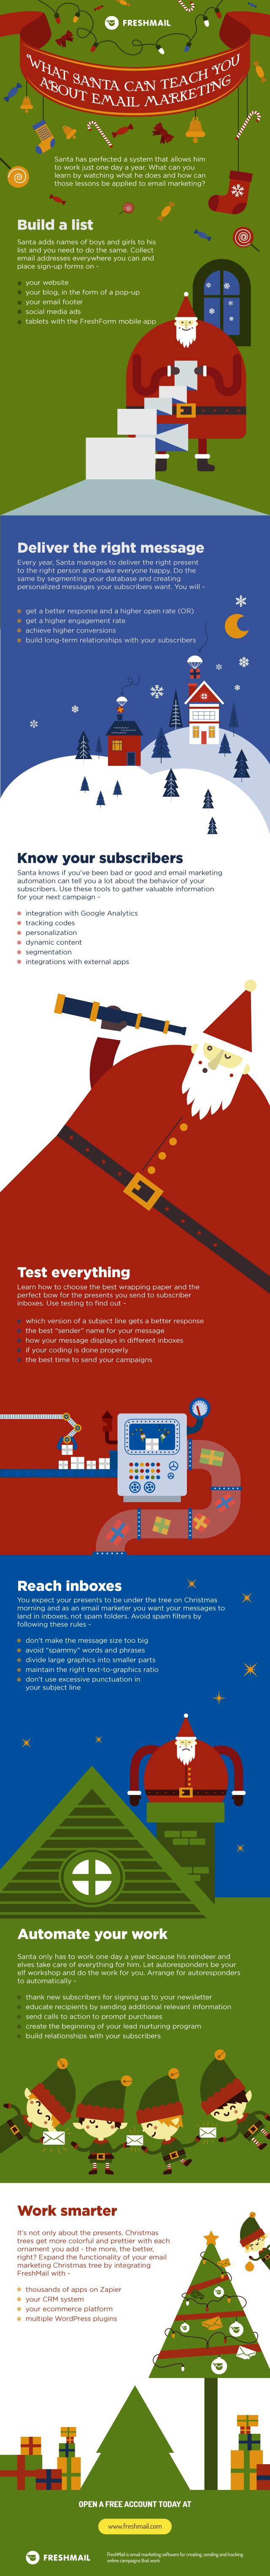 infographic_santa_email_marketing